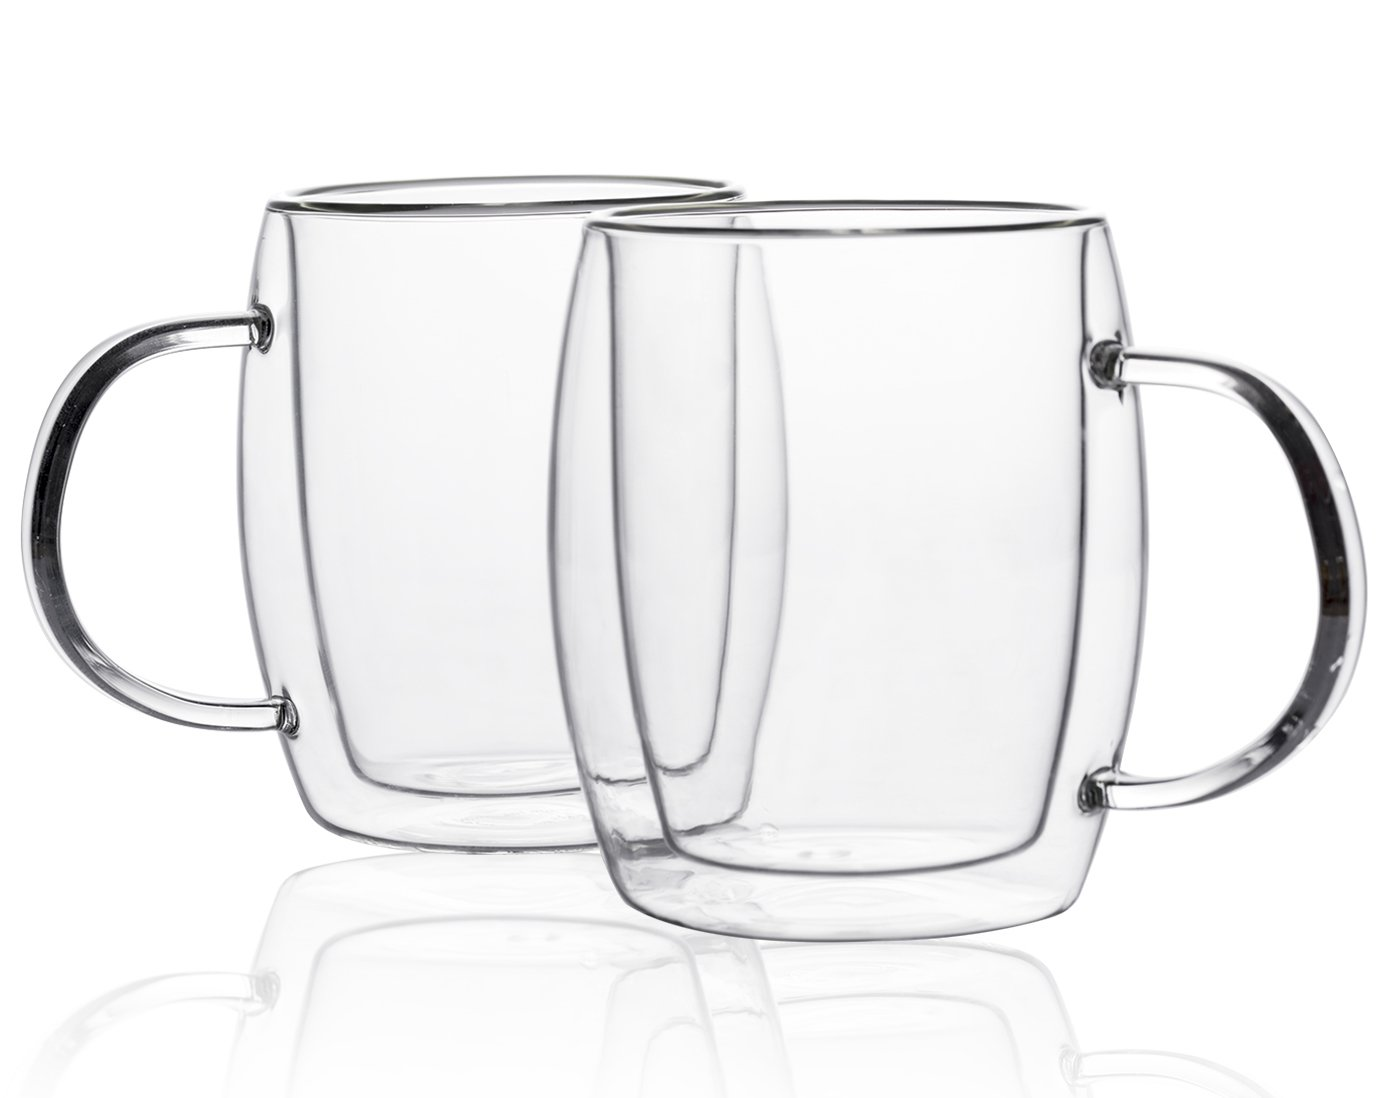 Insulated Glass Coffee Mugs 11.2 Qunce, Clear Tea Latte Drinking Cup Set of 2, Safe for Dishwasher and Microwave